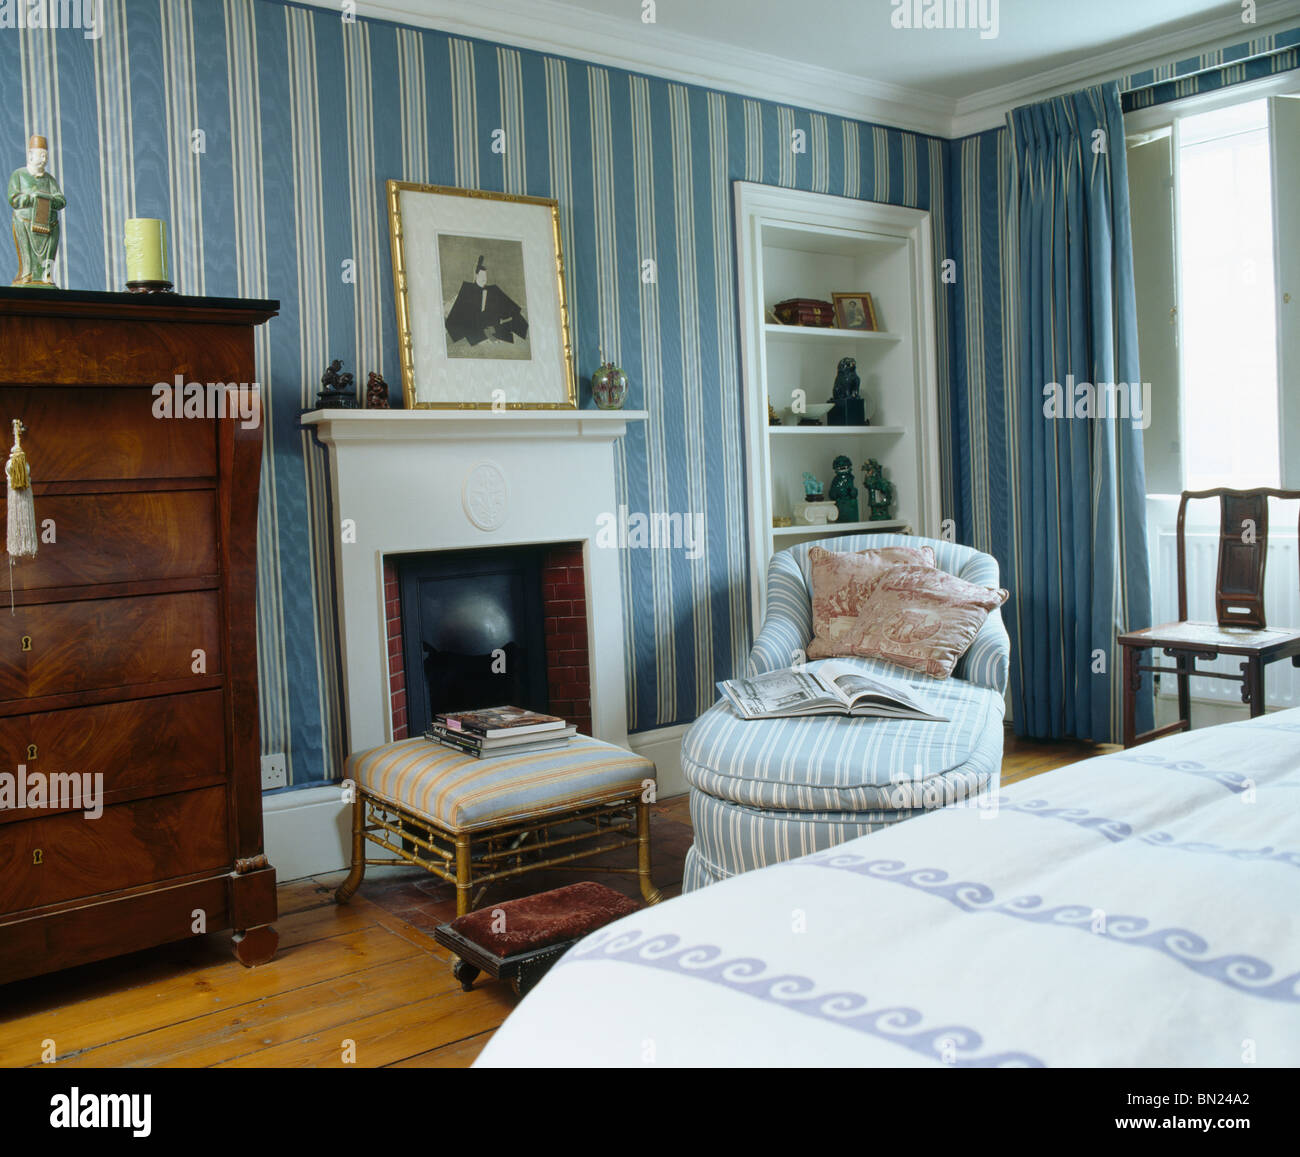 Blue Striped Wallpaper In Townhouse Bedroom With Striped